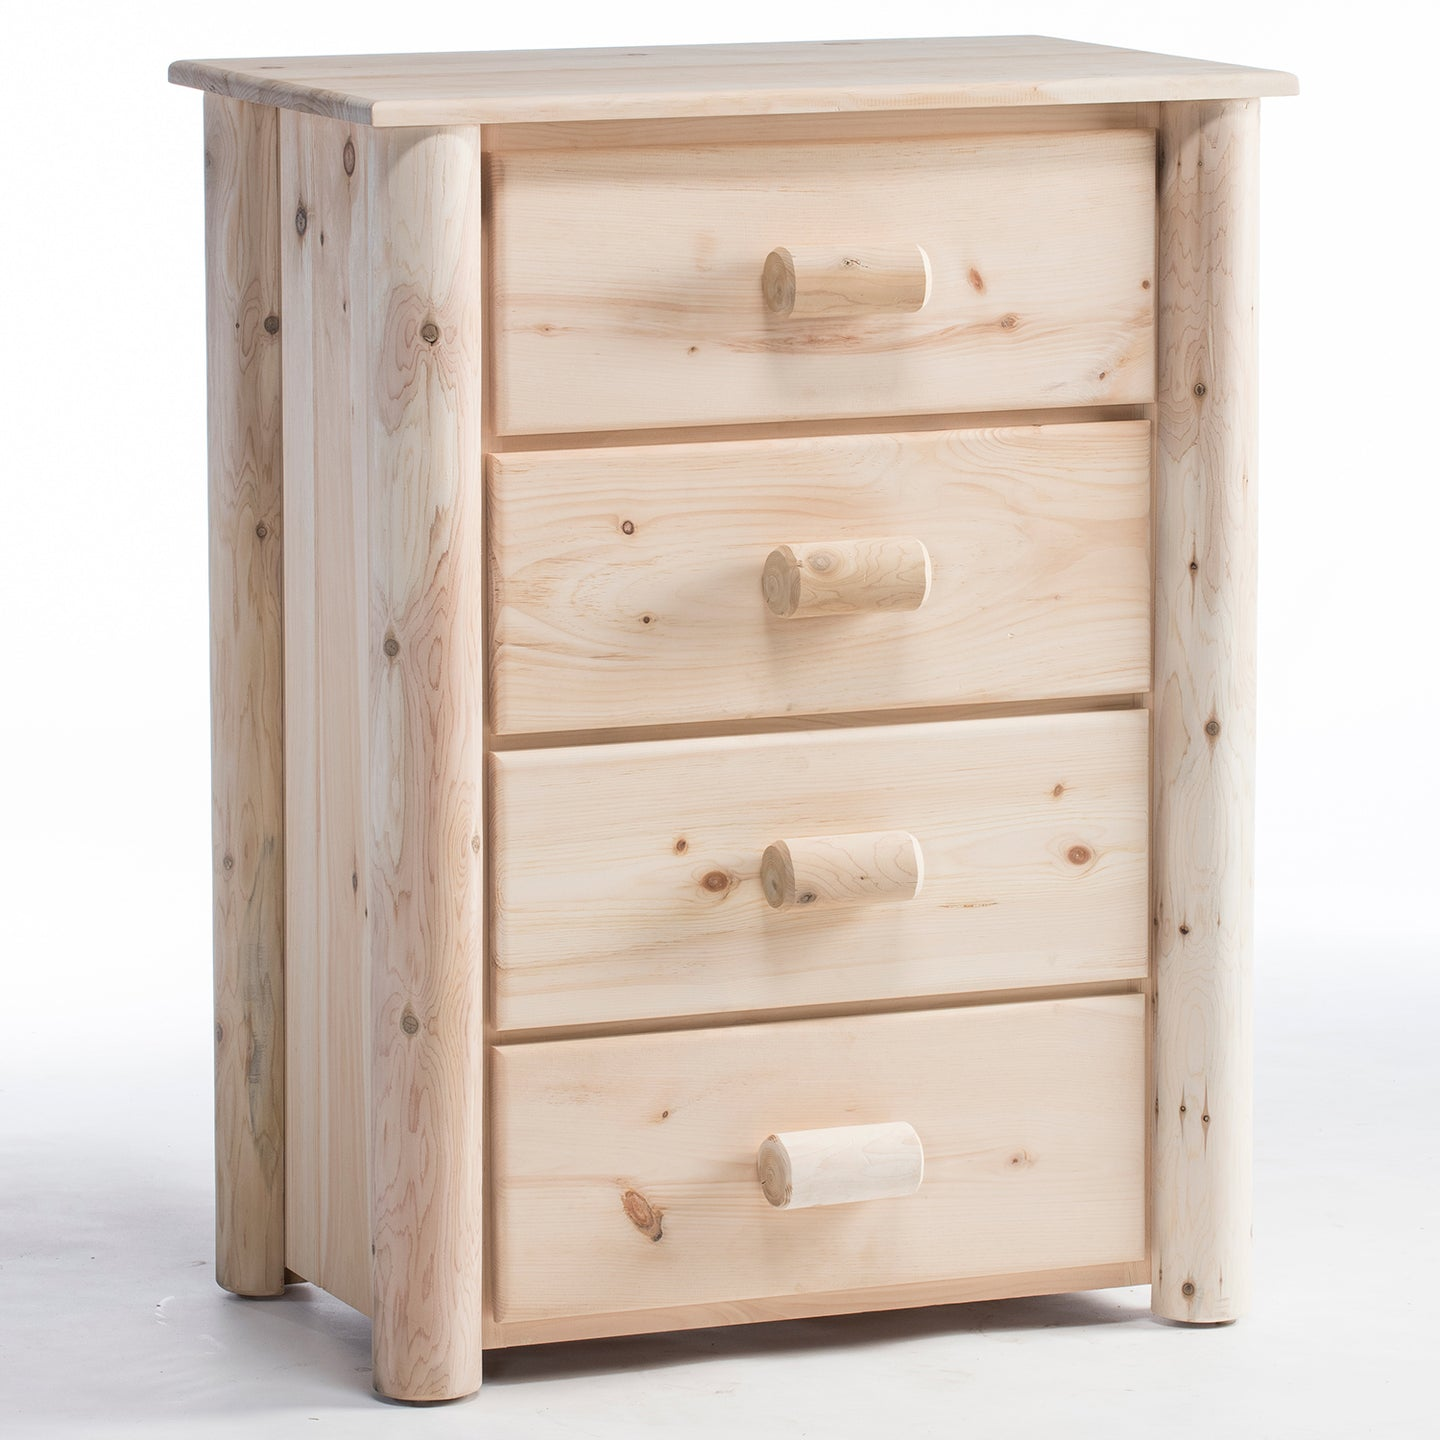 Lakeland Mill Frontier 4 Drawer Chest/Choice of Finish